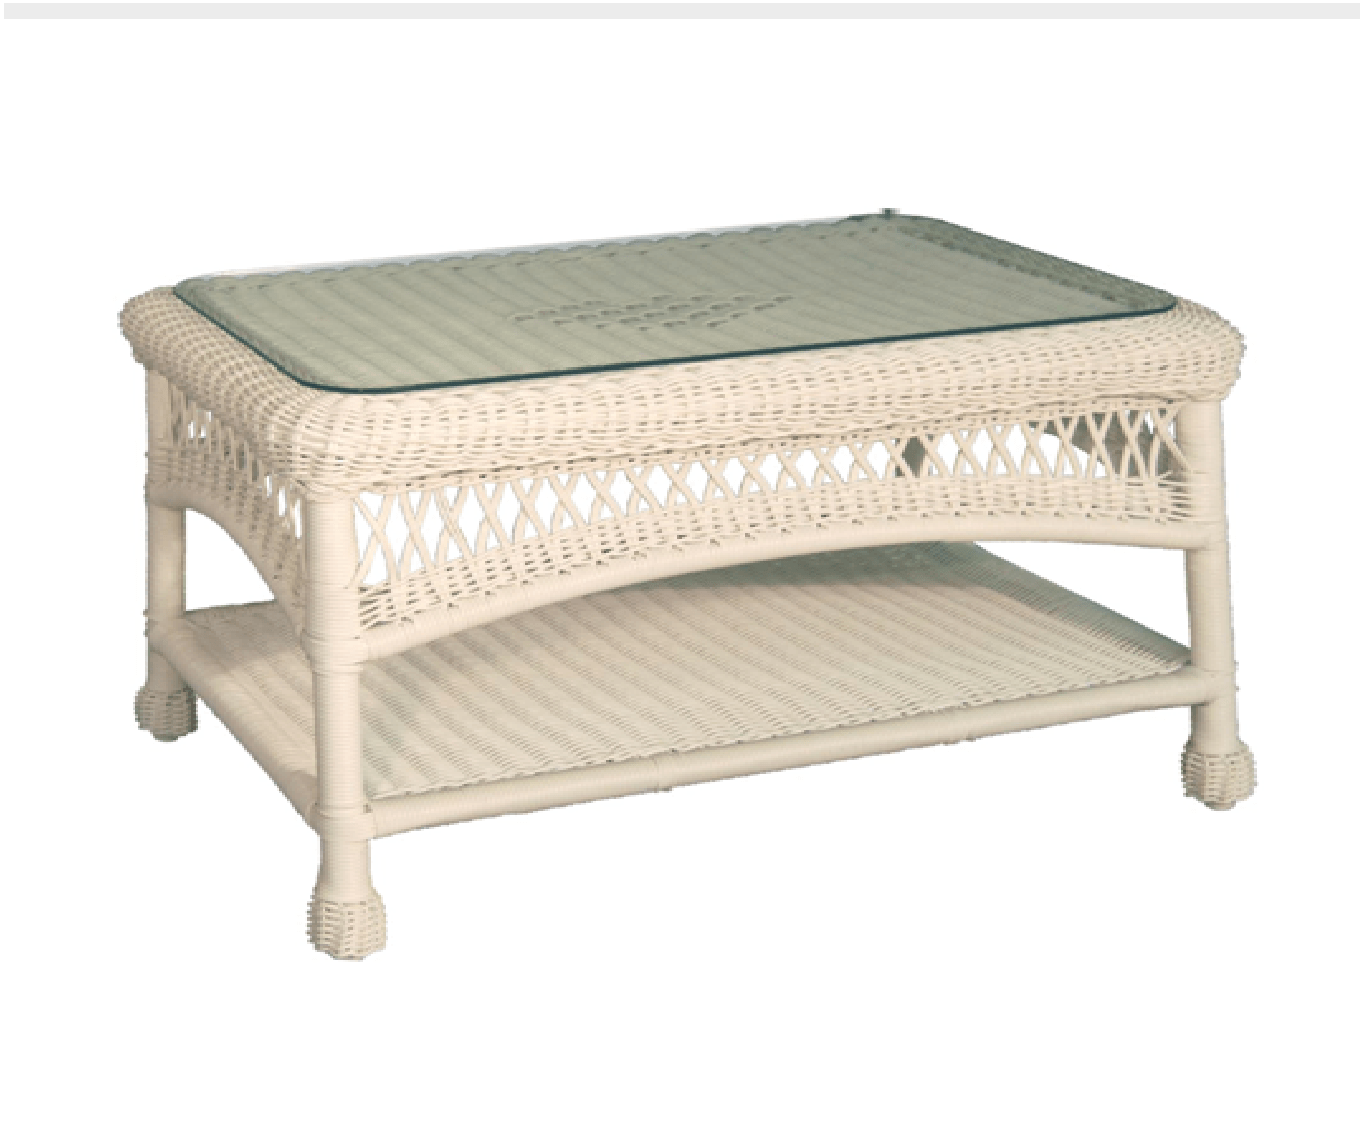 Charles Schober Resin Alum Coffee Table With Glass Top  - Rattan Imports